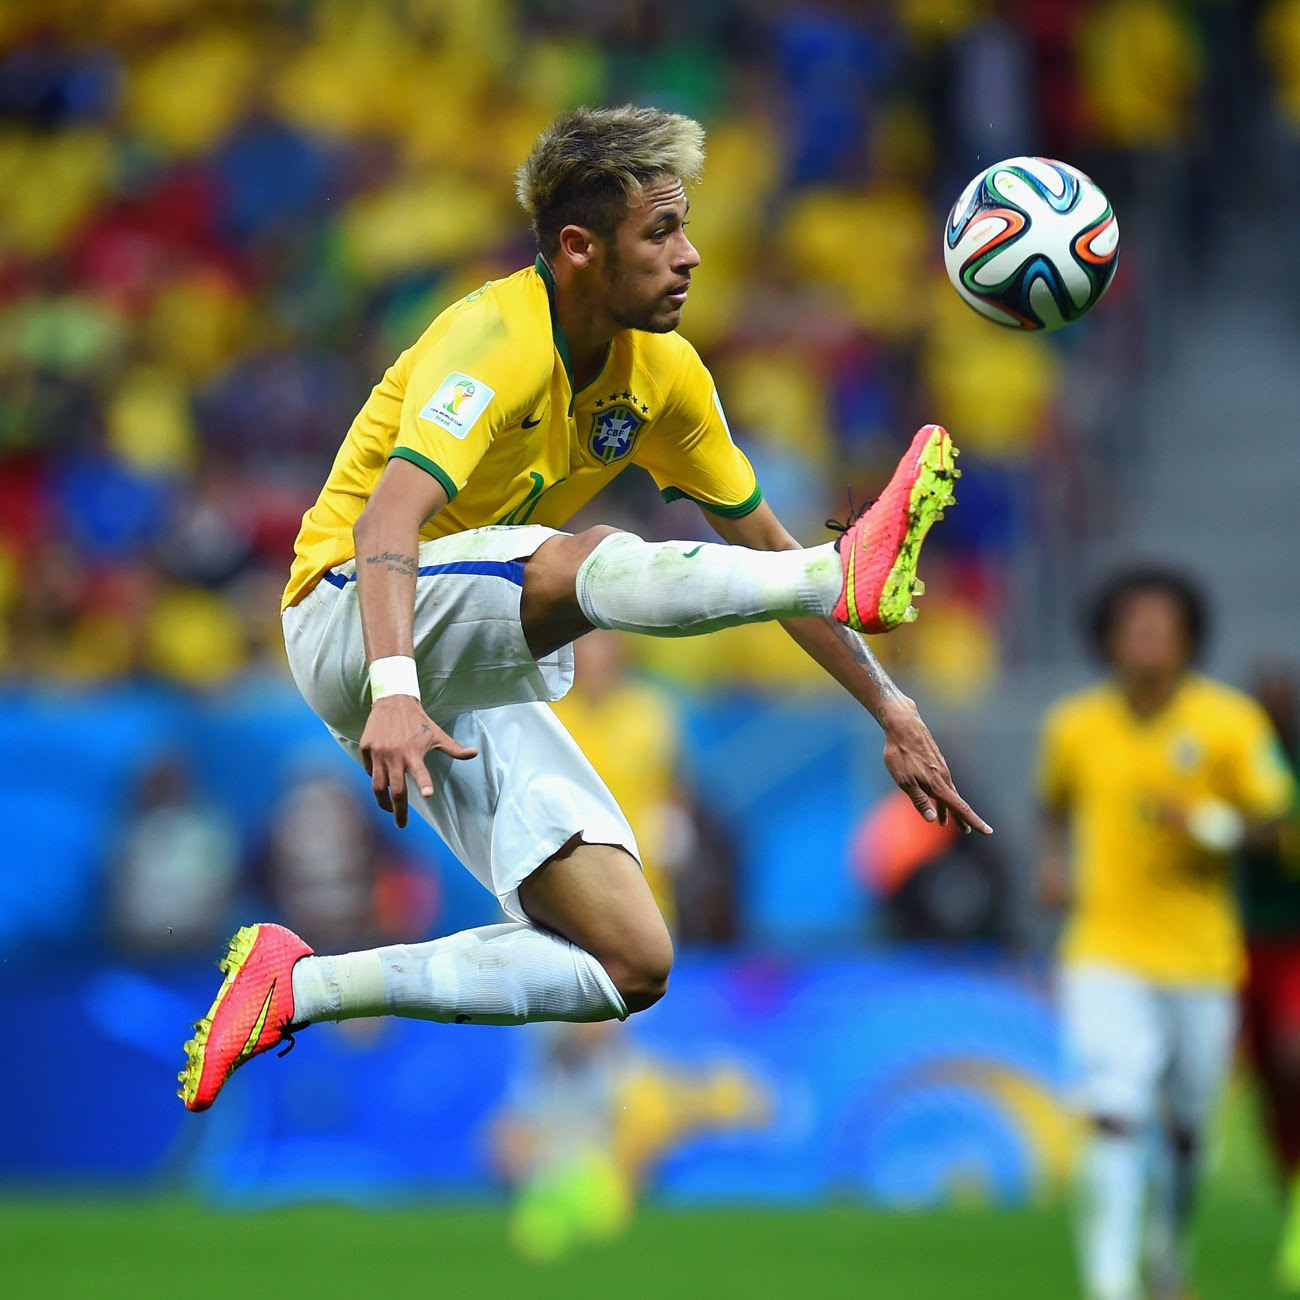 ALL SPORTS PLAYERS: Neymar Jr Very Great Footballer 2014